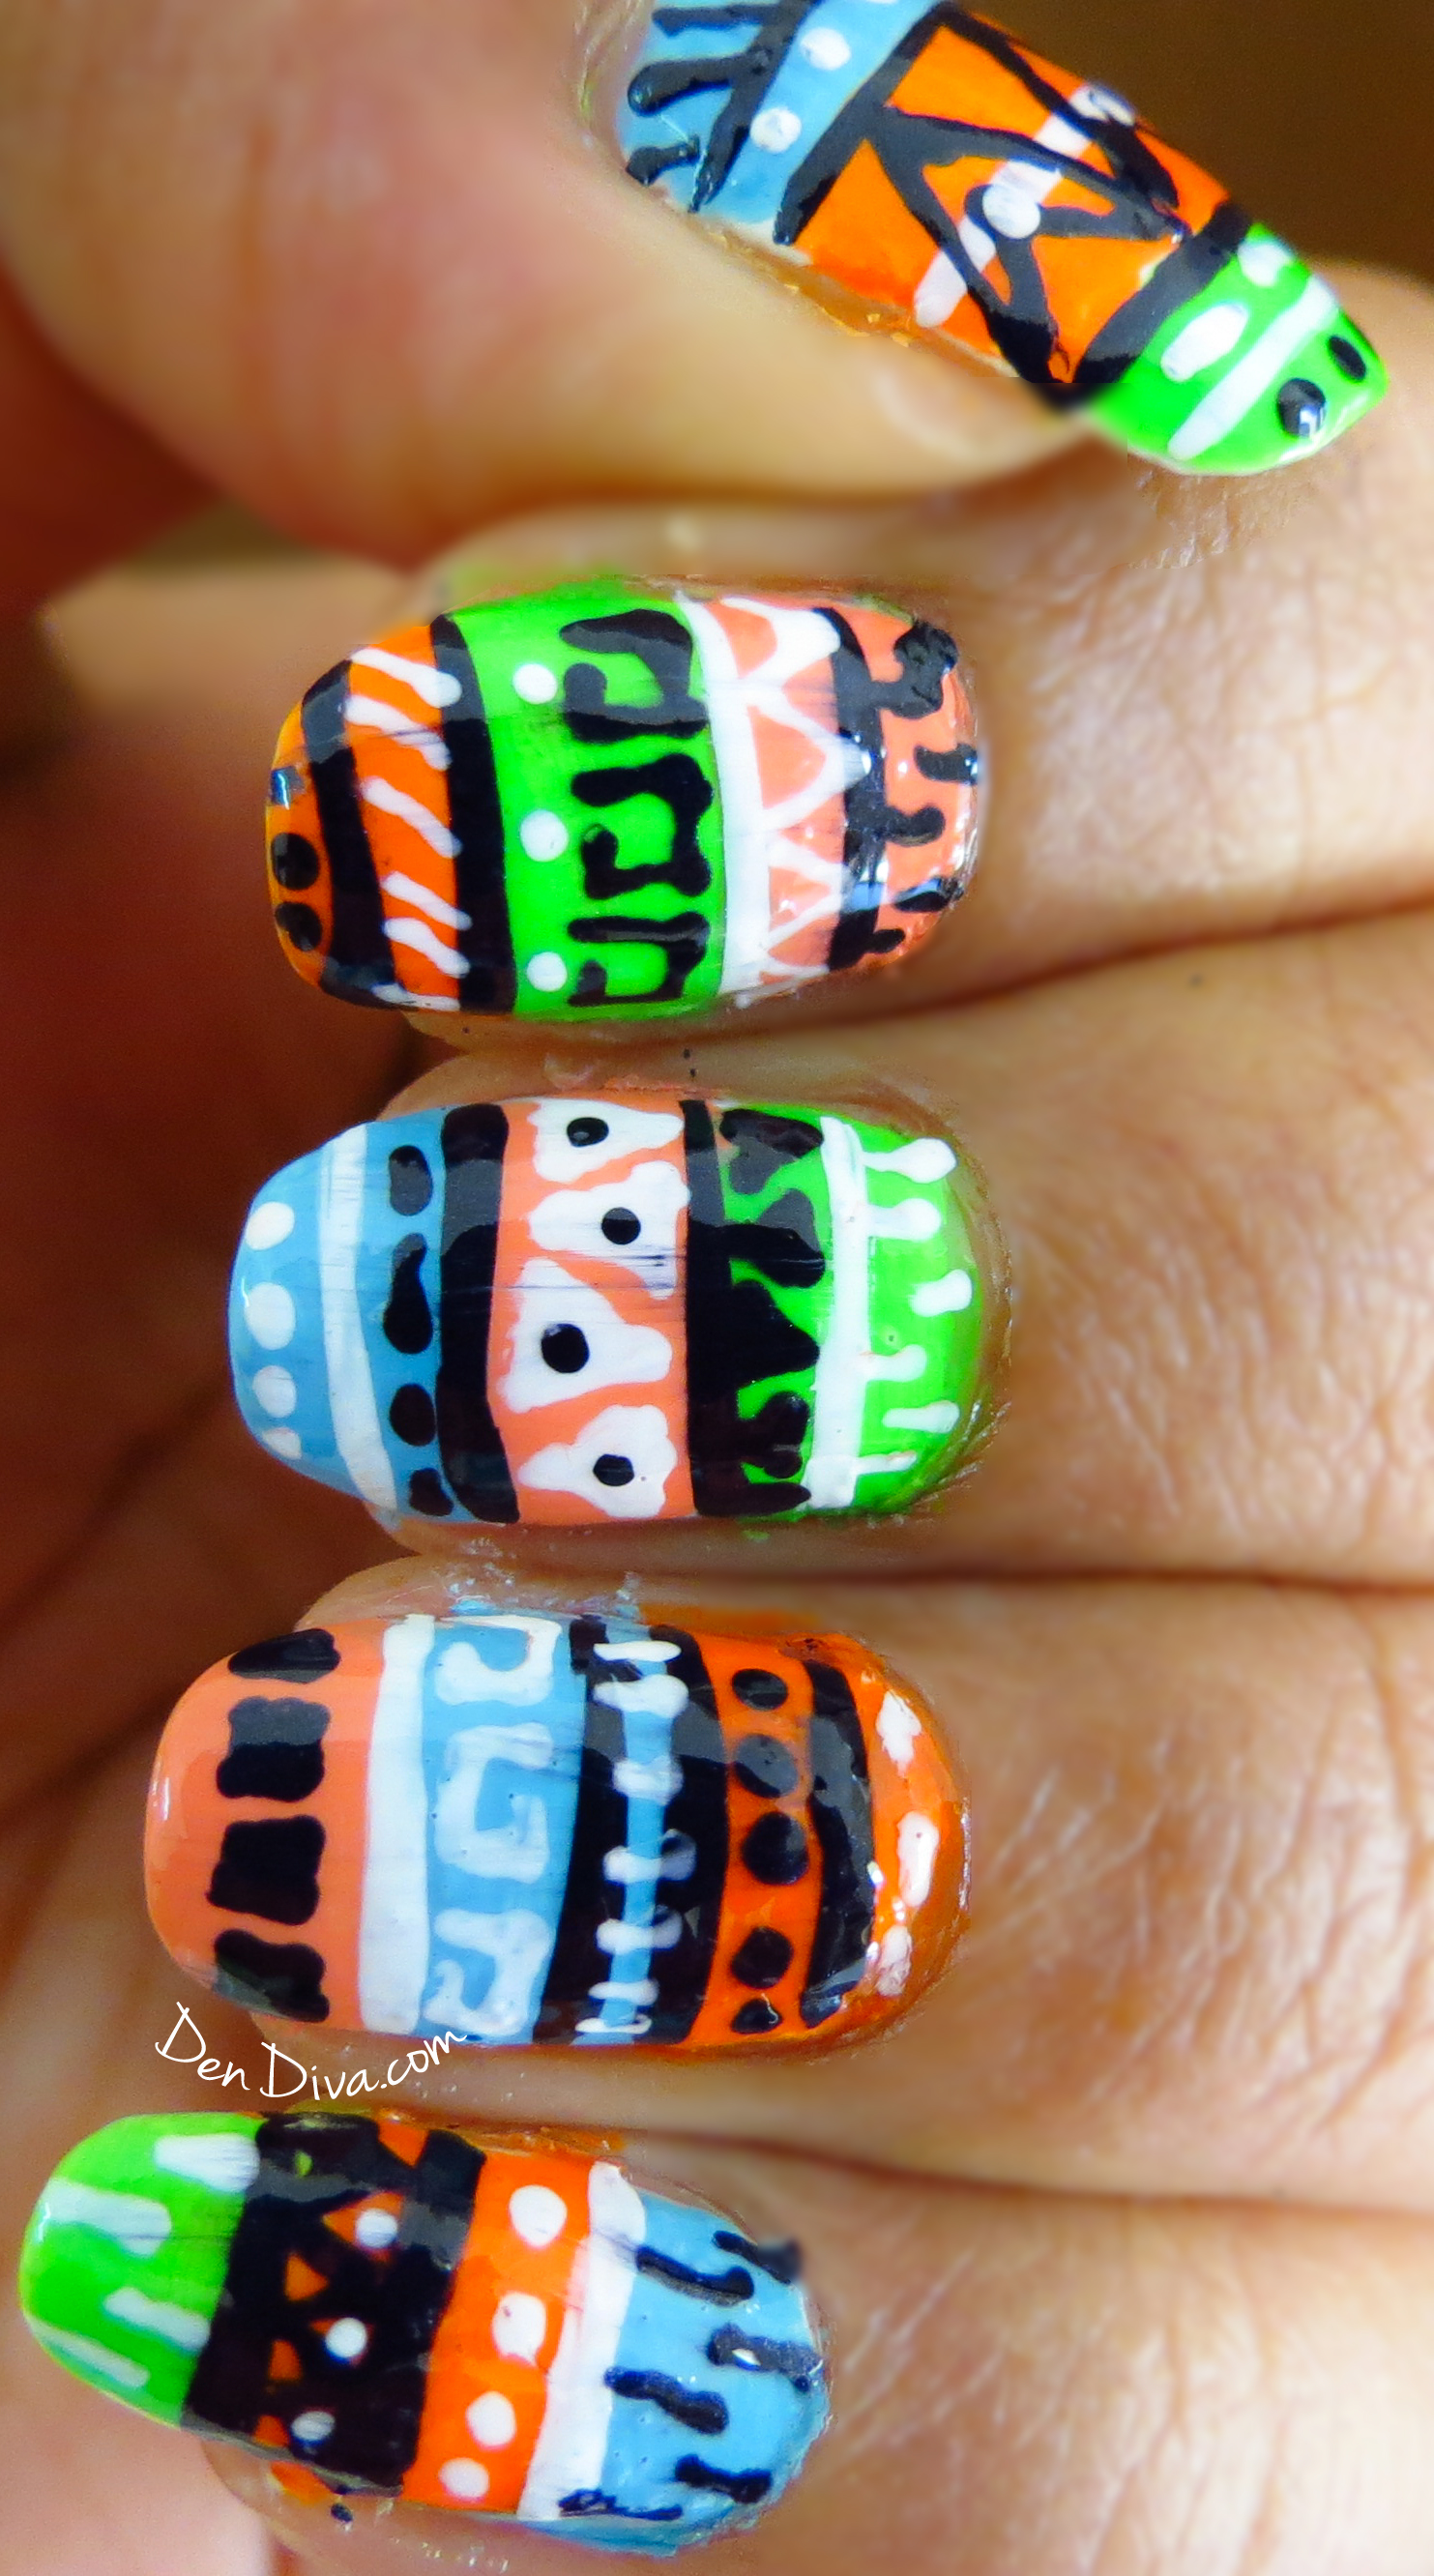 Neon Tribal/Aztec Nail Art